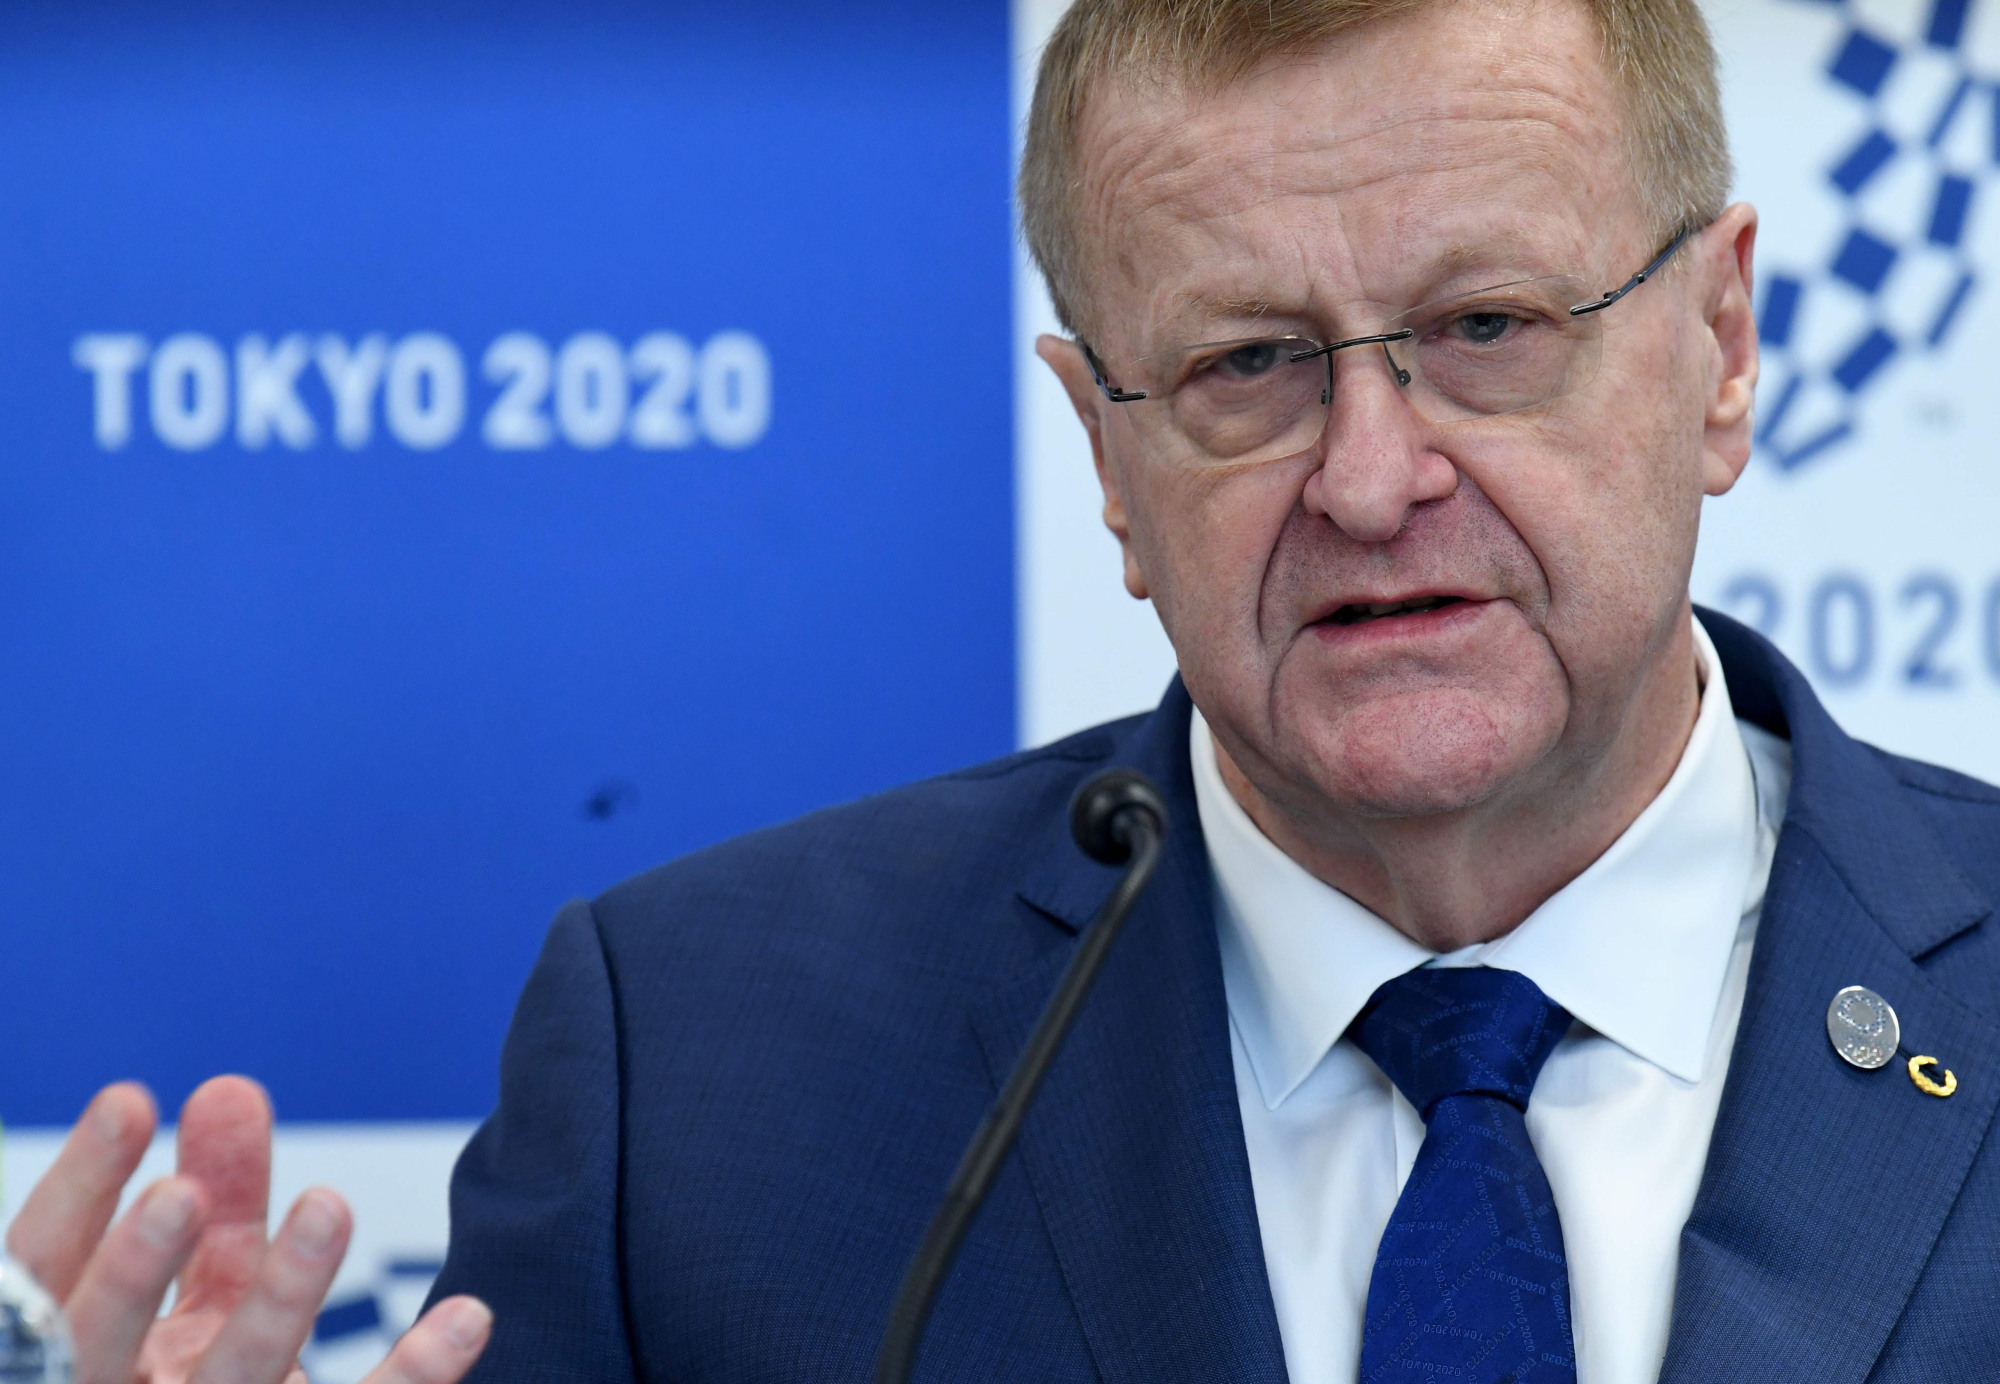 International Olympic Committee Vice President John Coates holds a news conference Friday after meeting with Tokyo 2020 organizers. | AFP-JIJI